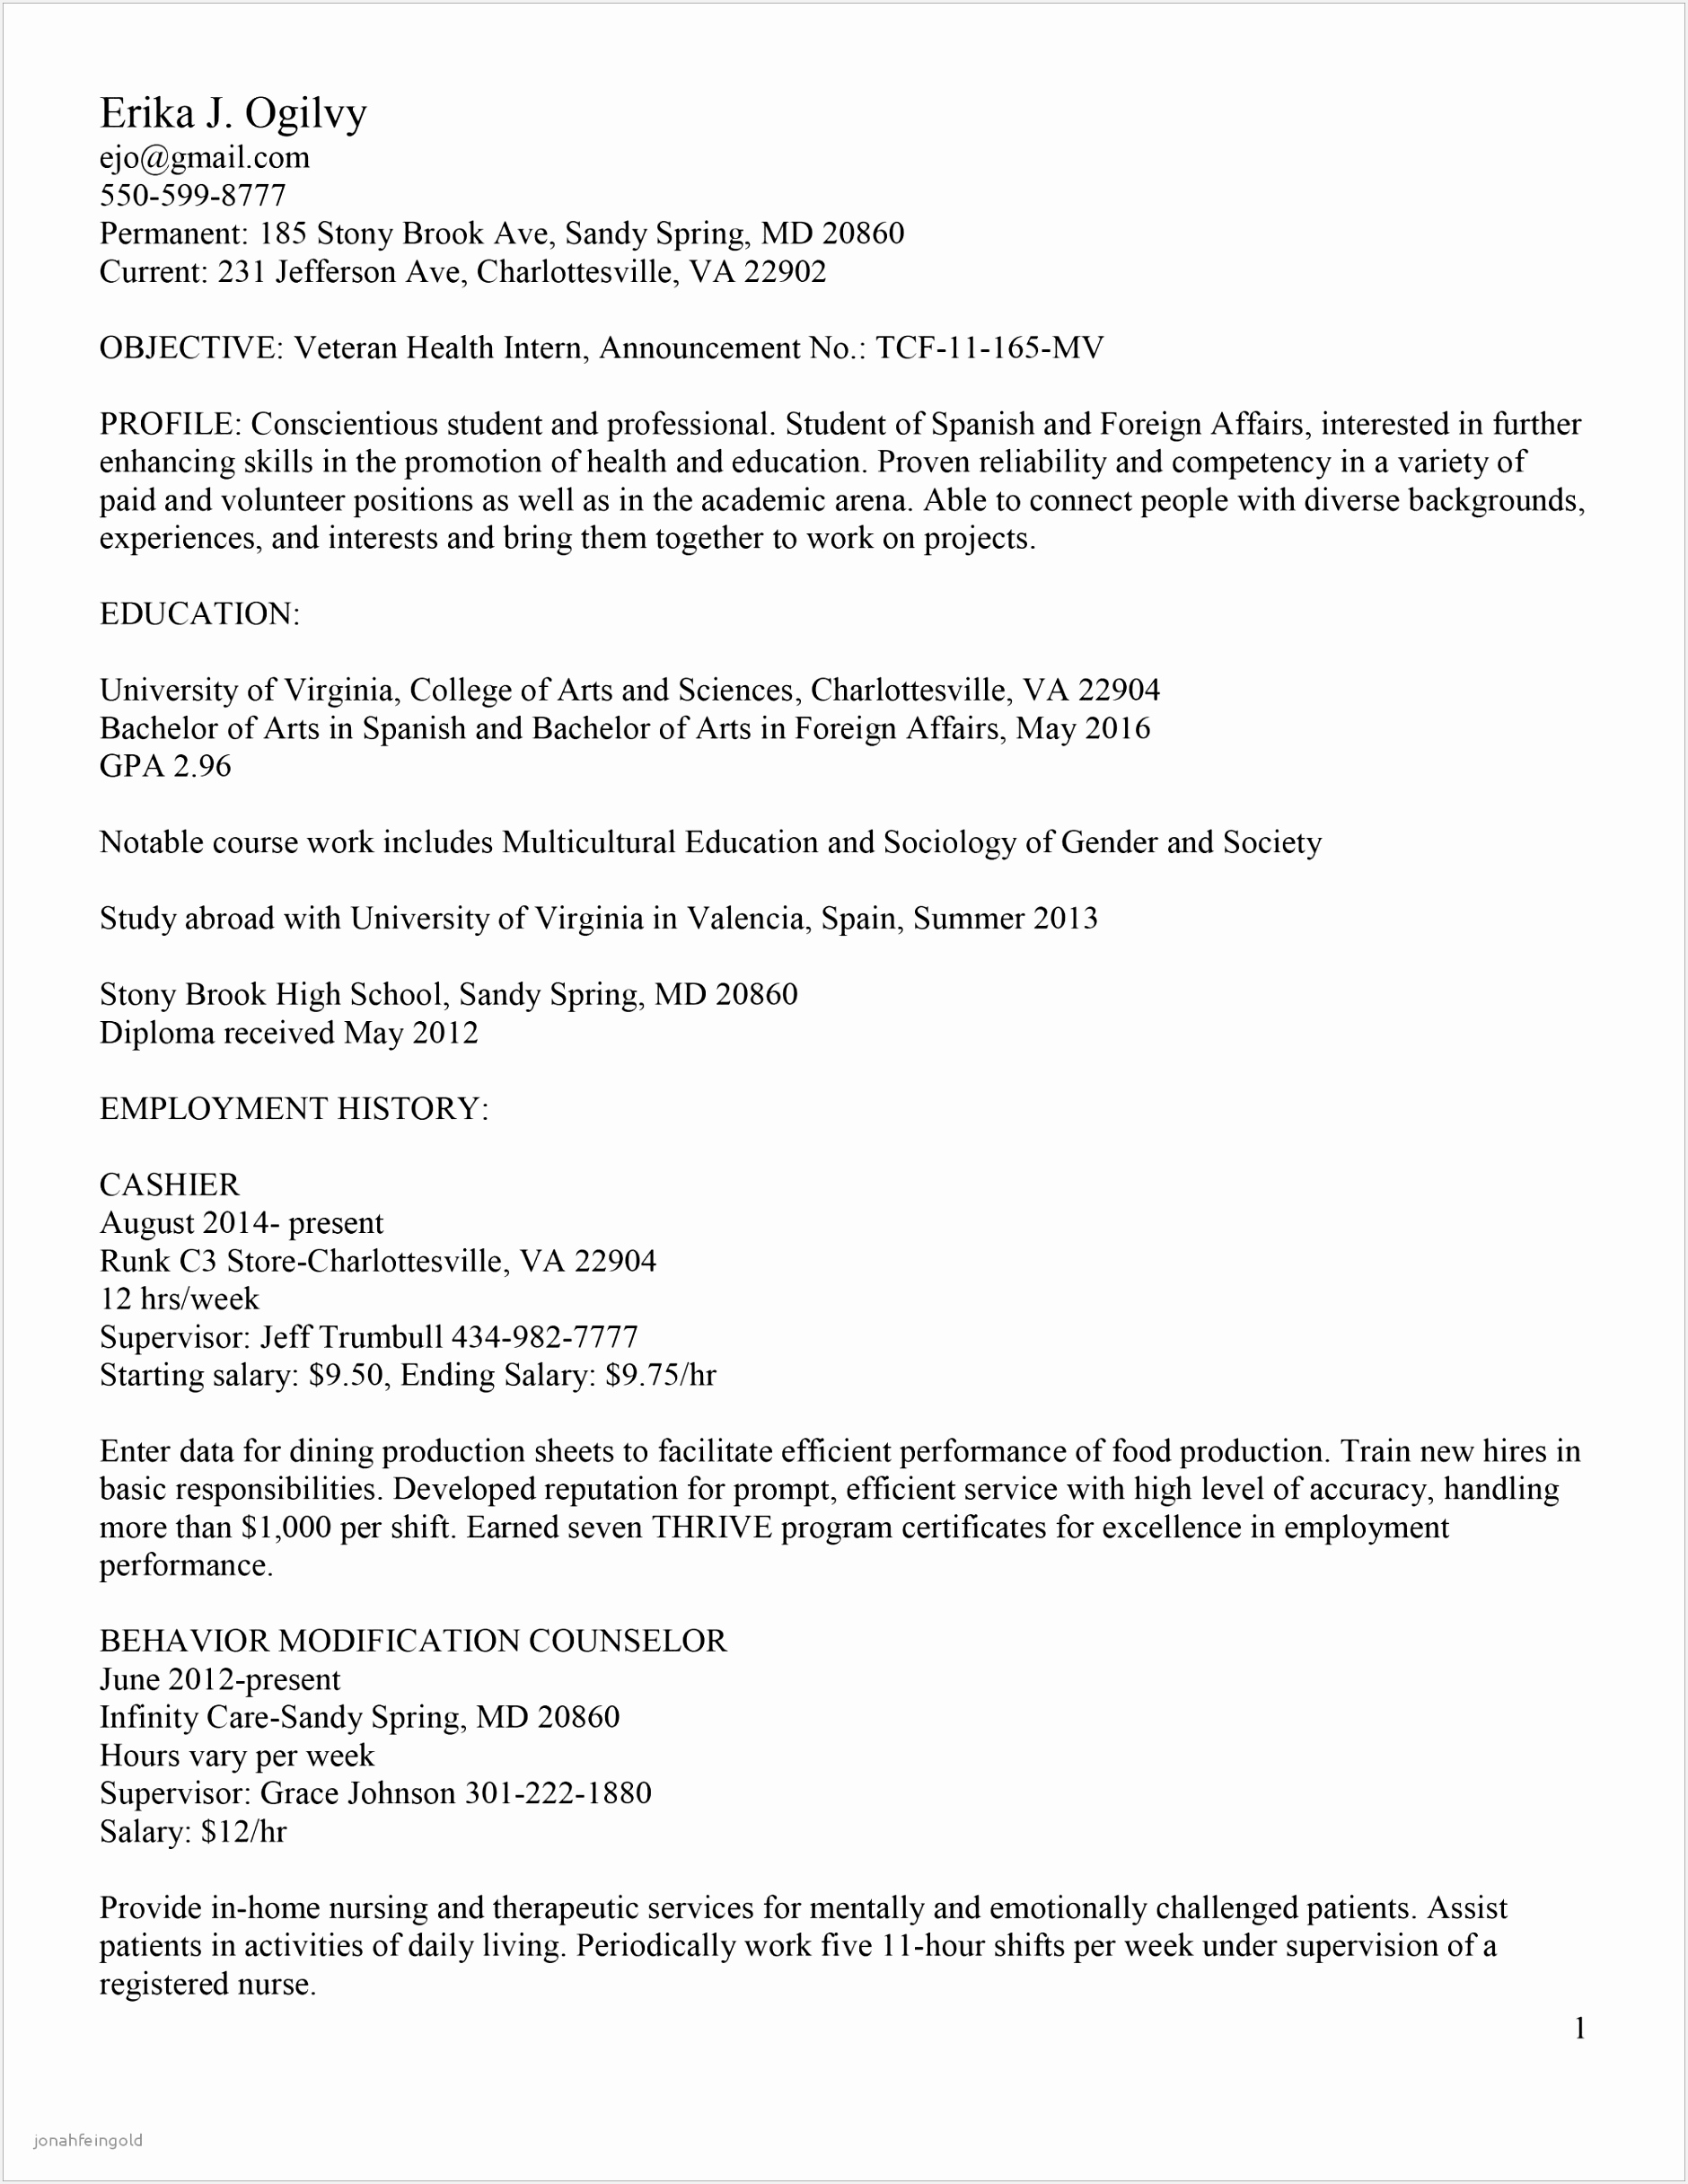 Resume Examples for Volunteer Work Tfpyq New Sample Resume for Volunteer Teacher New Sample Resume Doc New Unique Of 10 Resume Examples for Volunteer Work